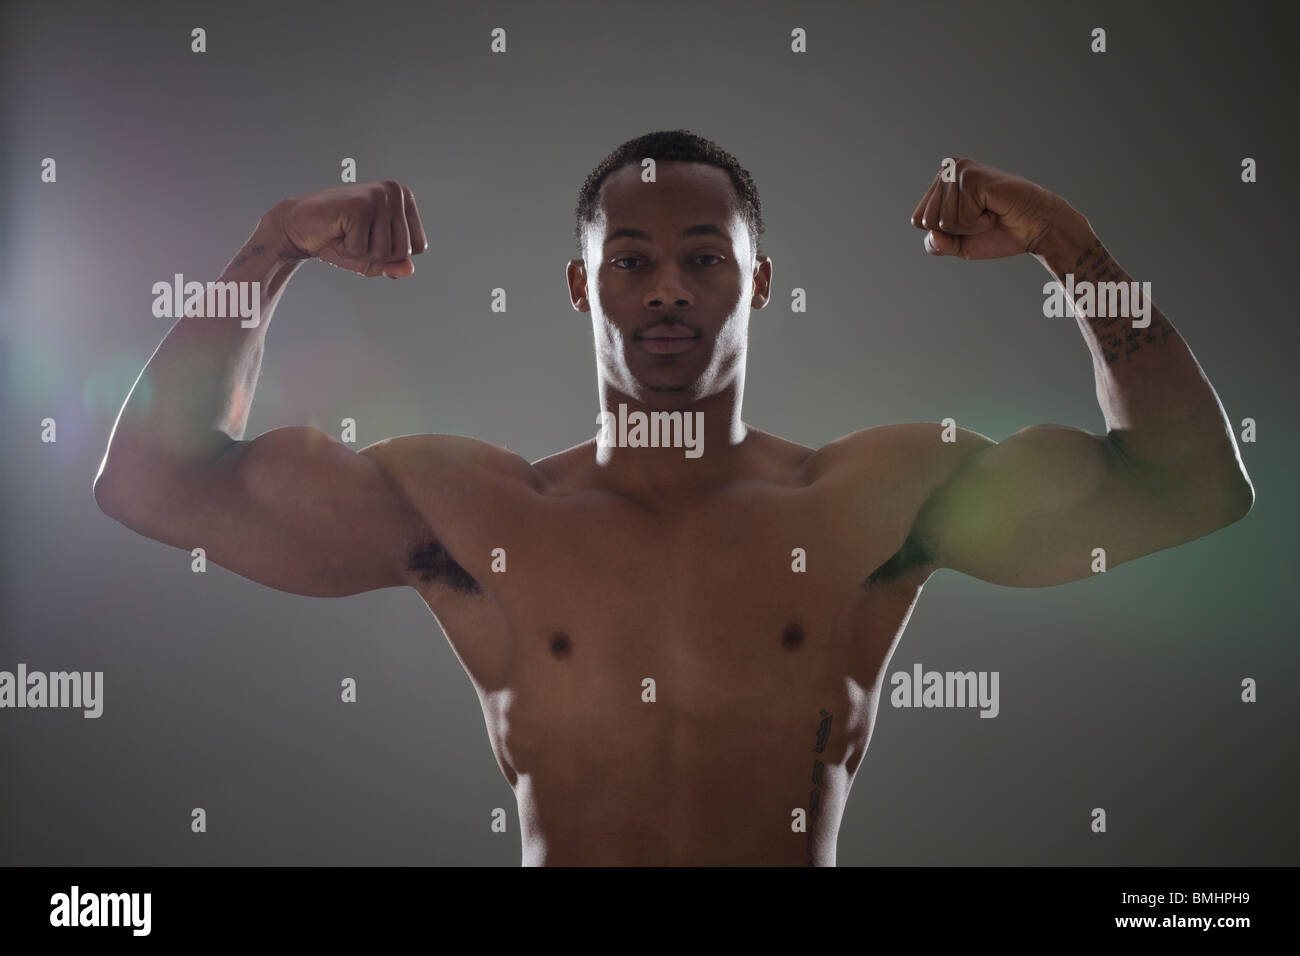 Physically fit man flexing his triceps - Stock Image